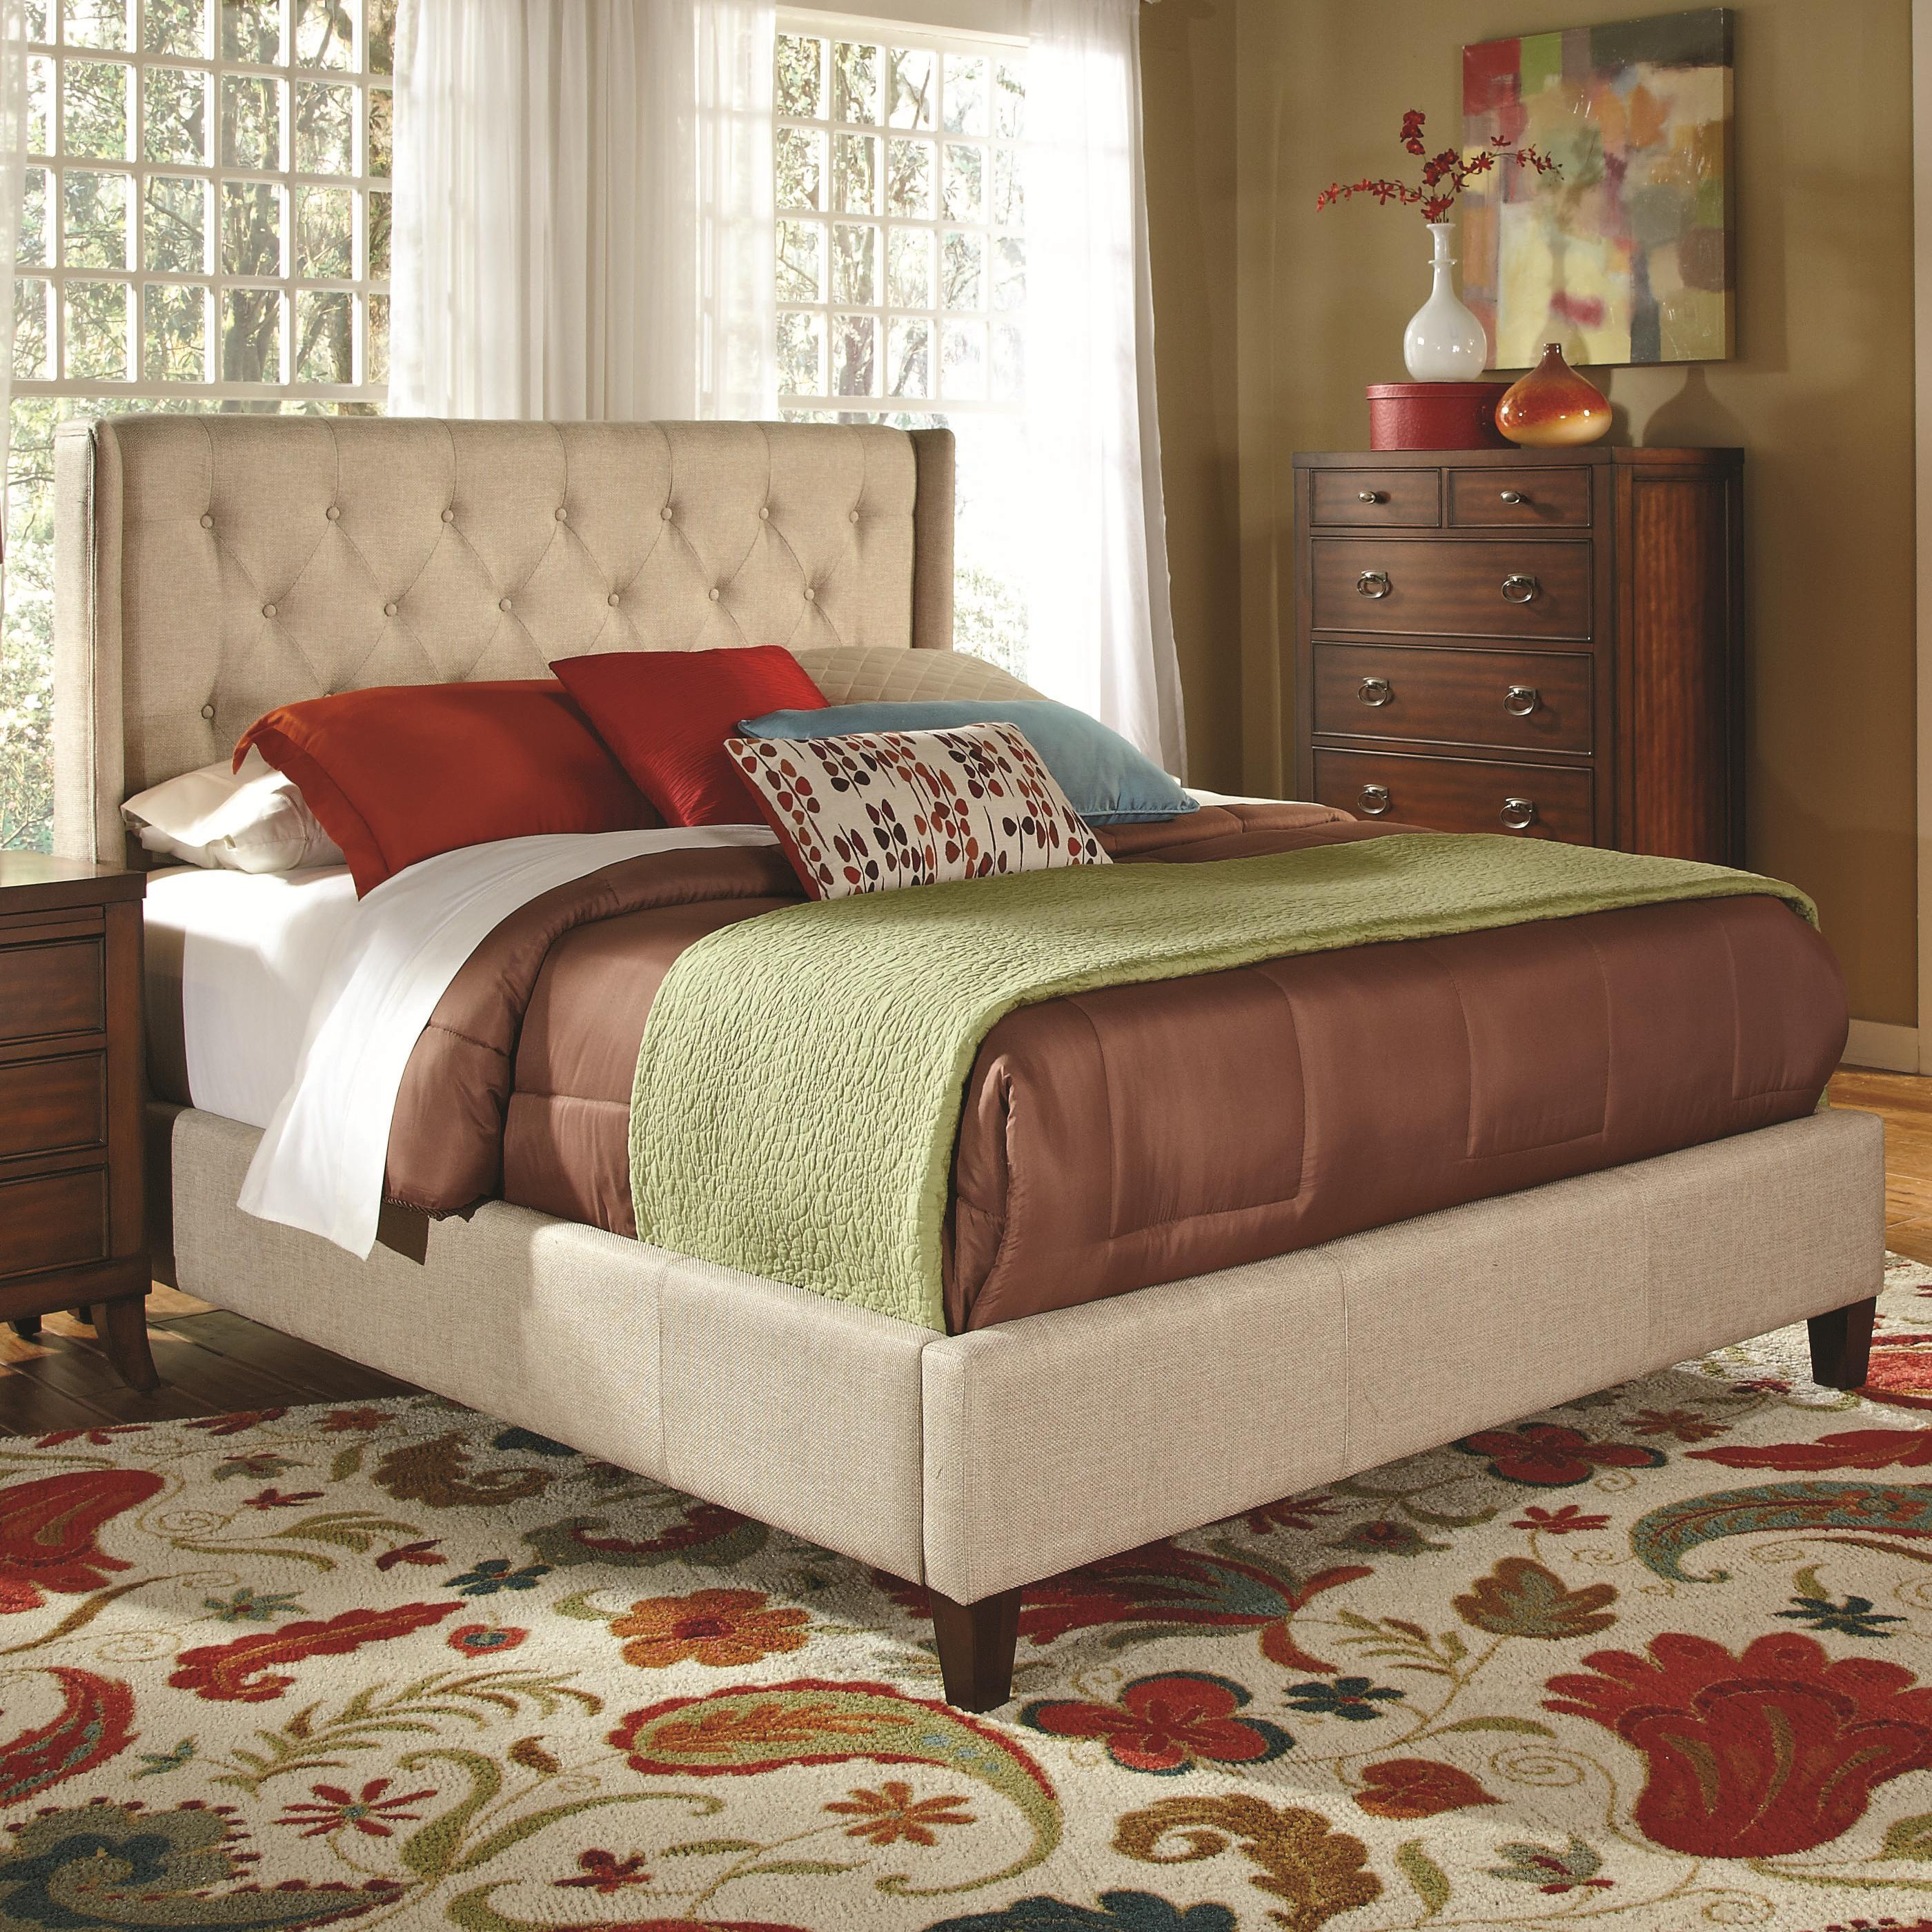 Coaster Upholstered Beds Queen Upholstered Bed - Item Number: 300332Q